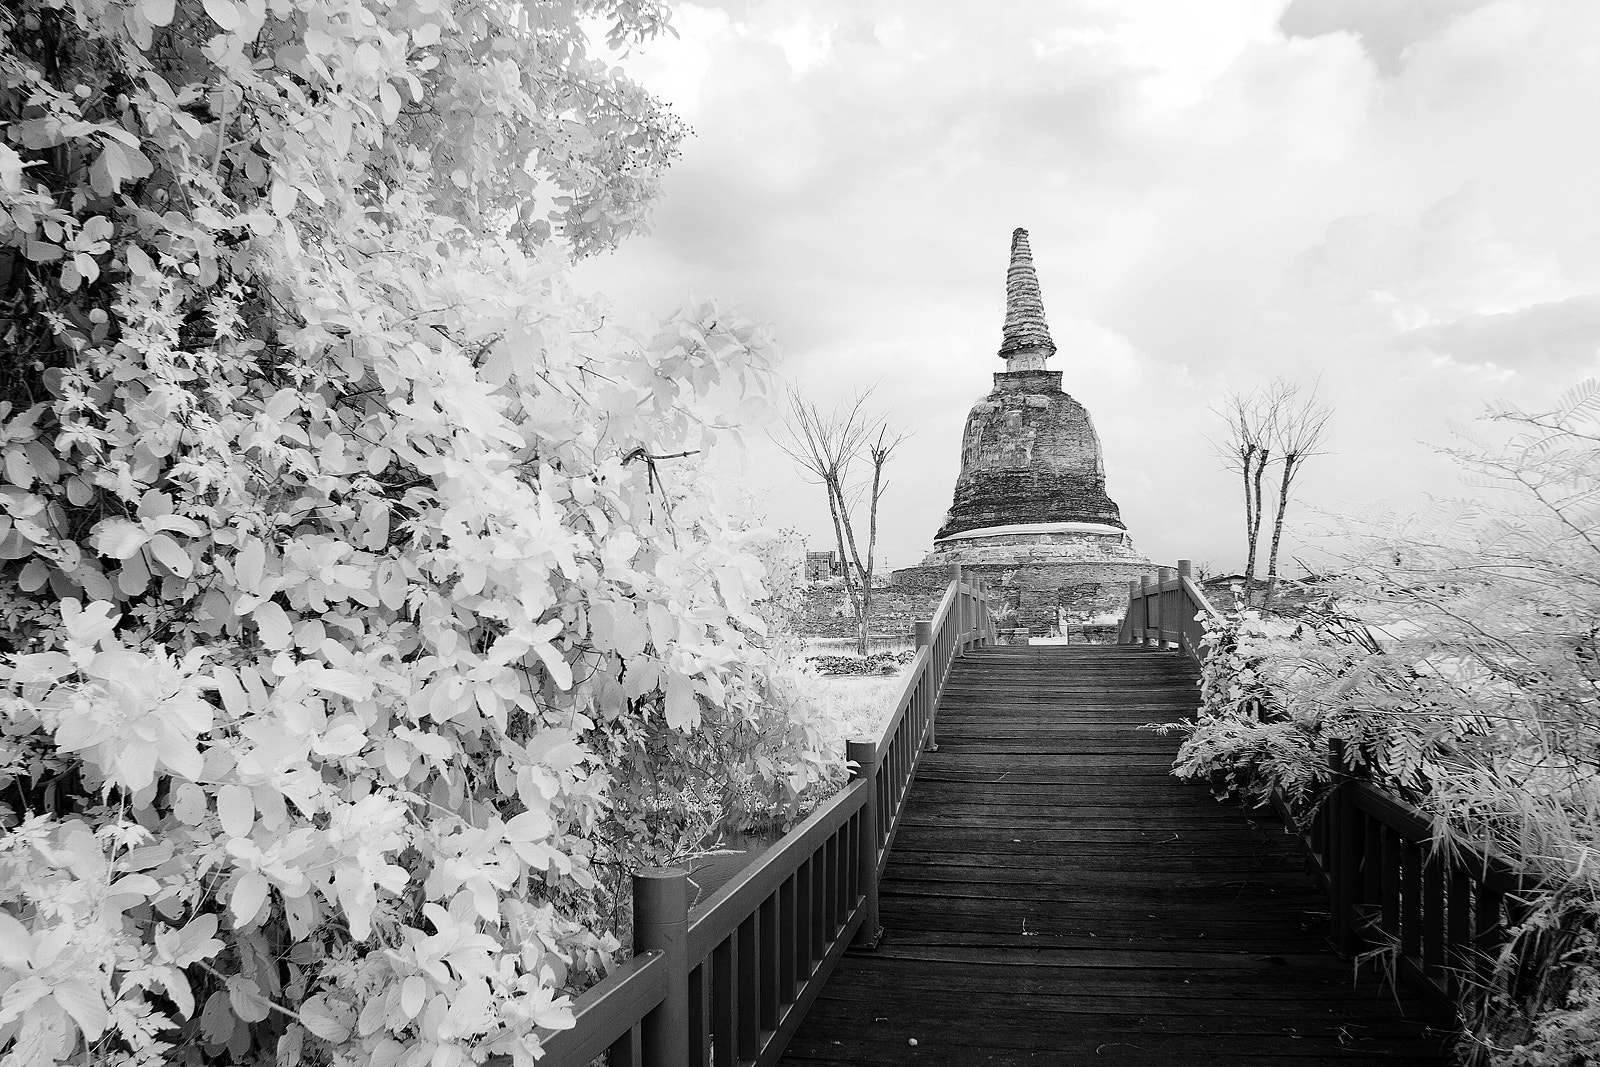 Photograph Pagoda Infrared by Nara Postcardonline on 500px